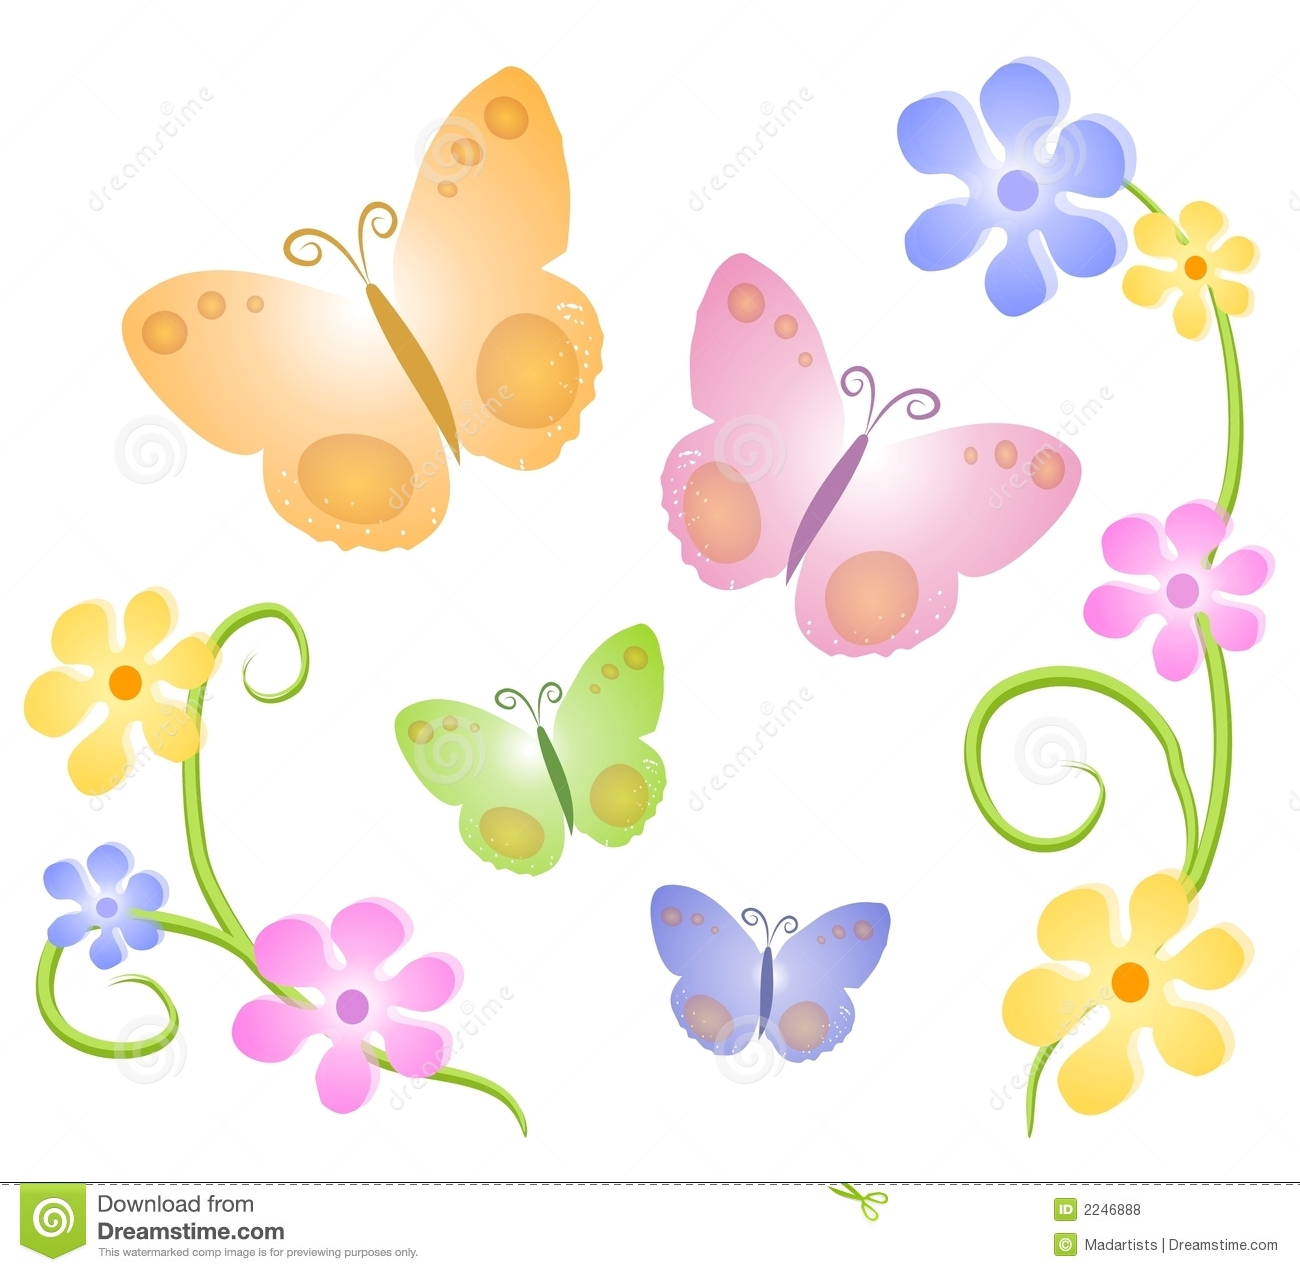 Butterfly and flowers clipart svg freeuse library Free butterfly and flower clipart - ClipartFest svg freeuse library